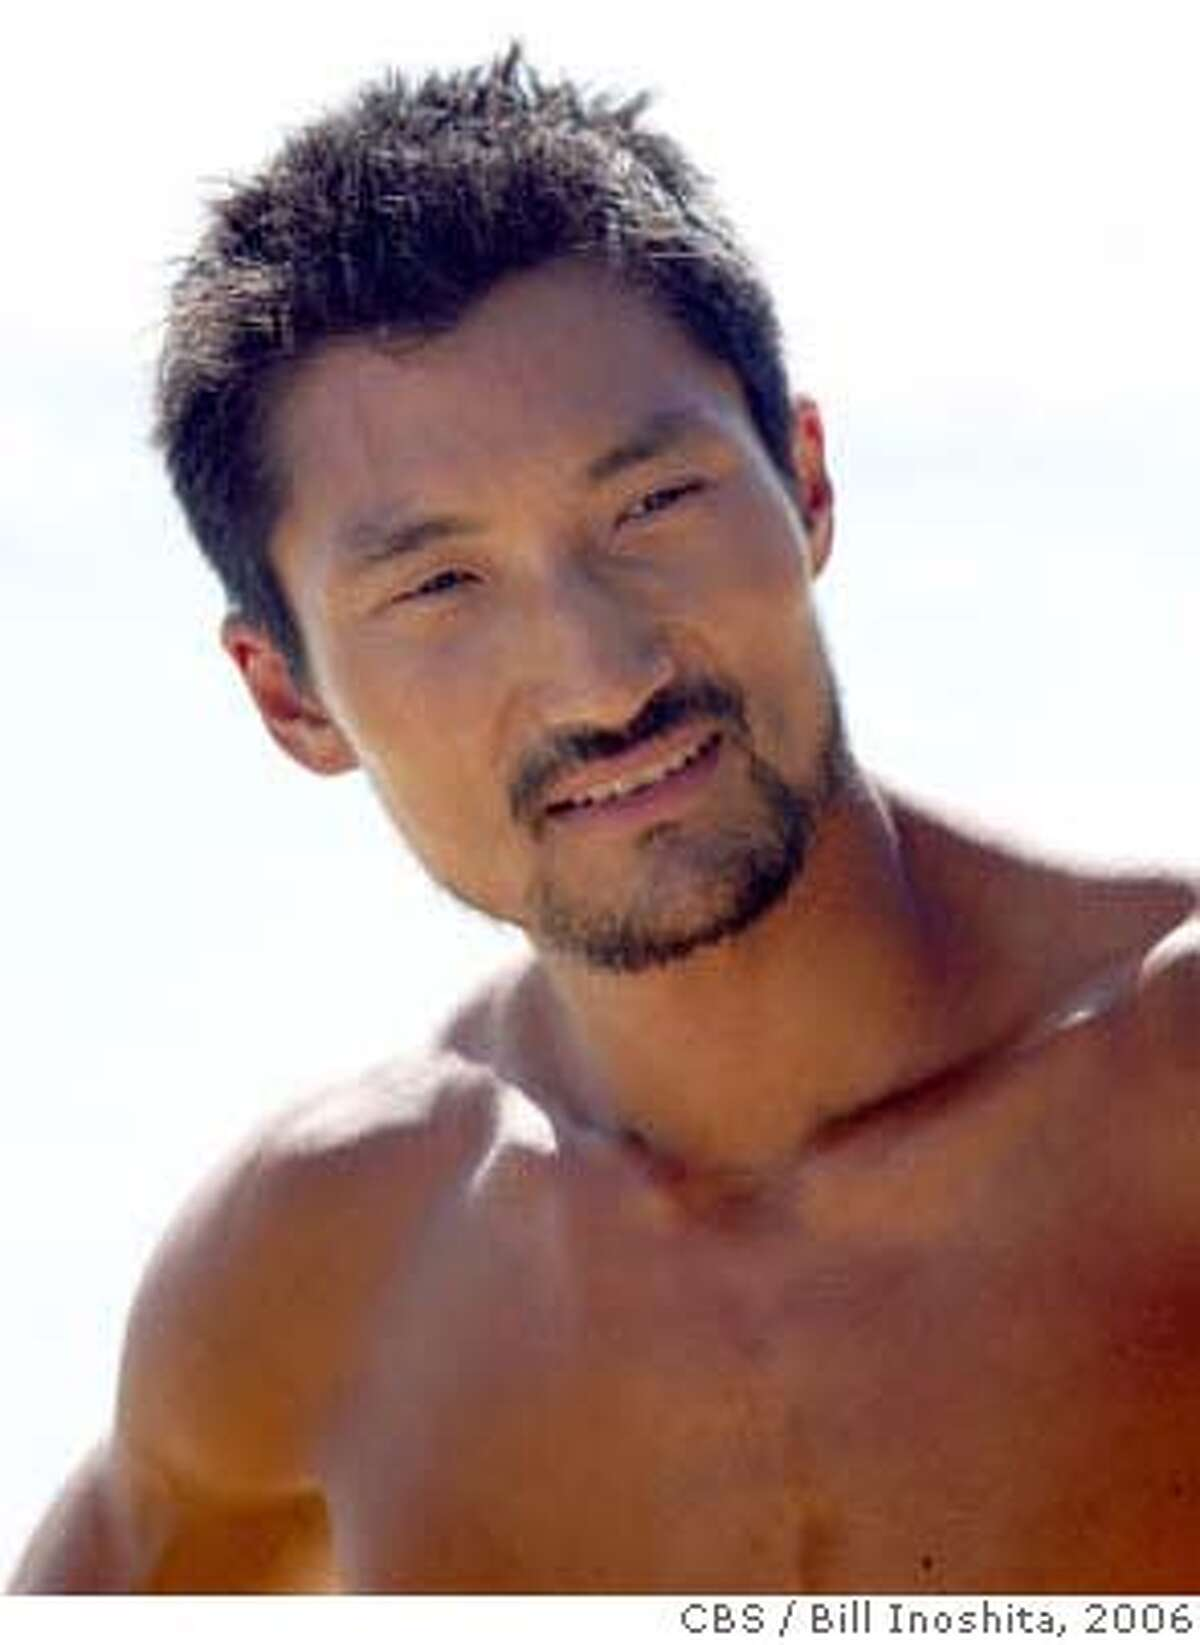 Yul Kwon during the eleventh episode of SURVIVOR: COOK ISLANDS, Thursdays, on the CBS Television Network. Photo: Bill Inoshita/CBS �2006 CBS Broadcasting Inc. All Rights Reserved. Ran on: 12-19-2006 Yul Kwon Ran on: 12-19-2006 Yul Kwon